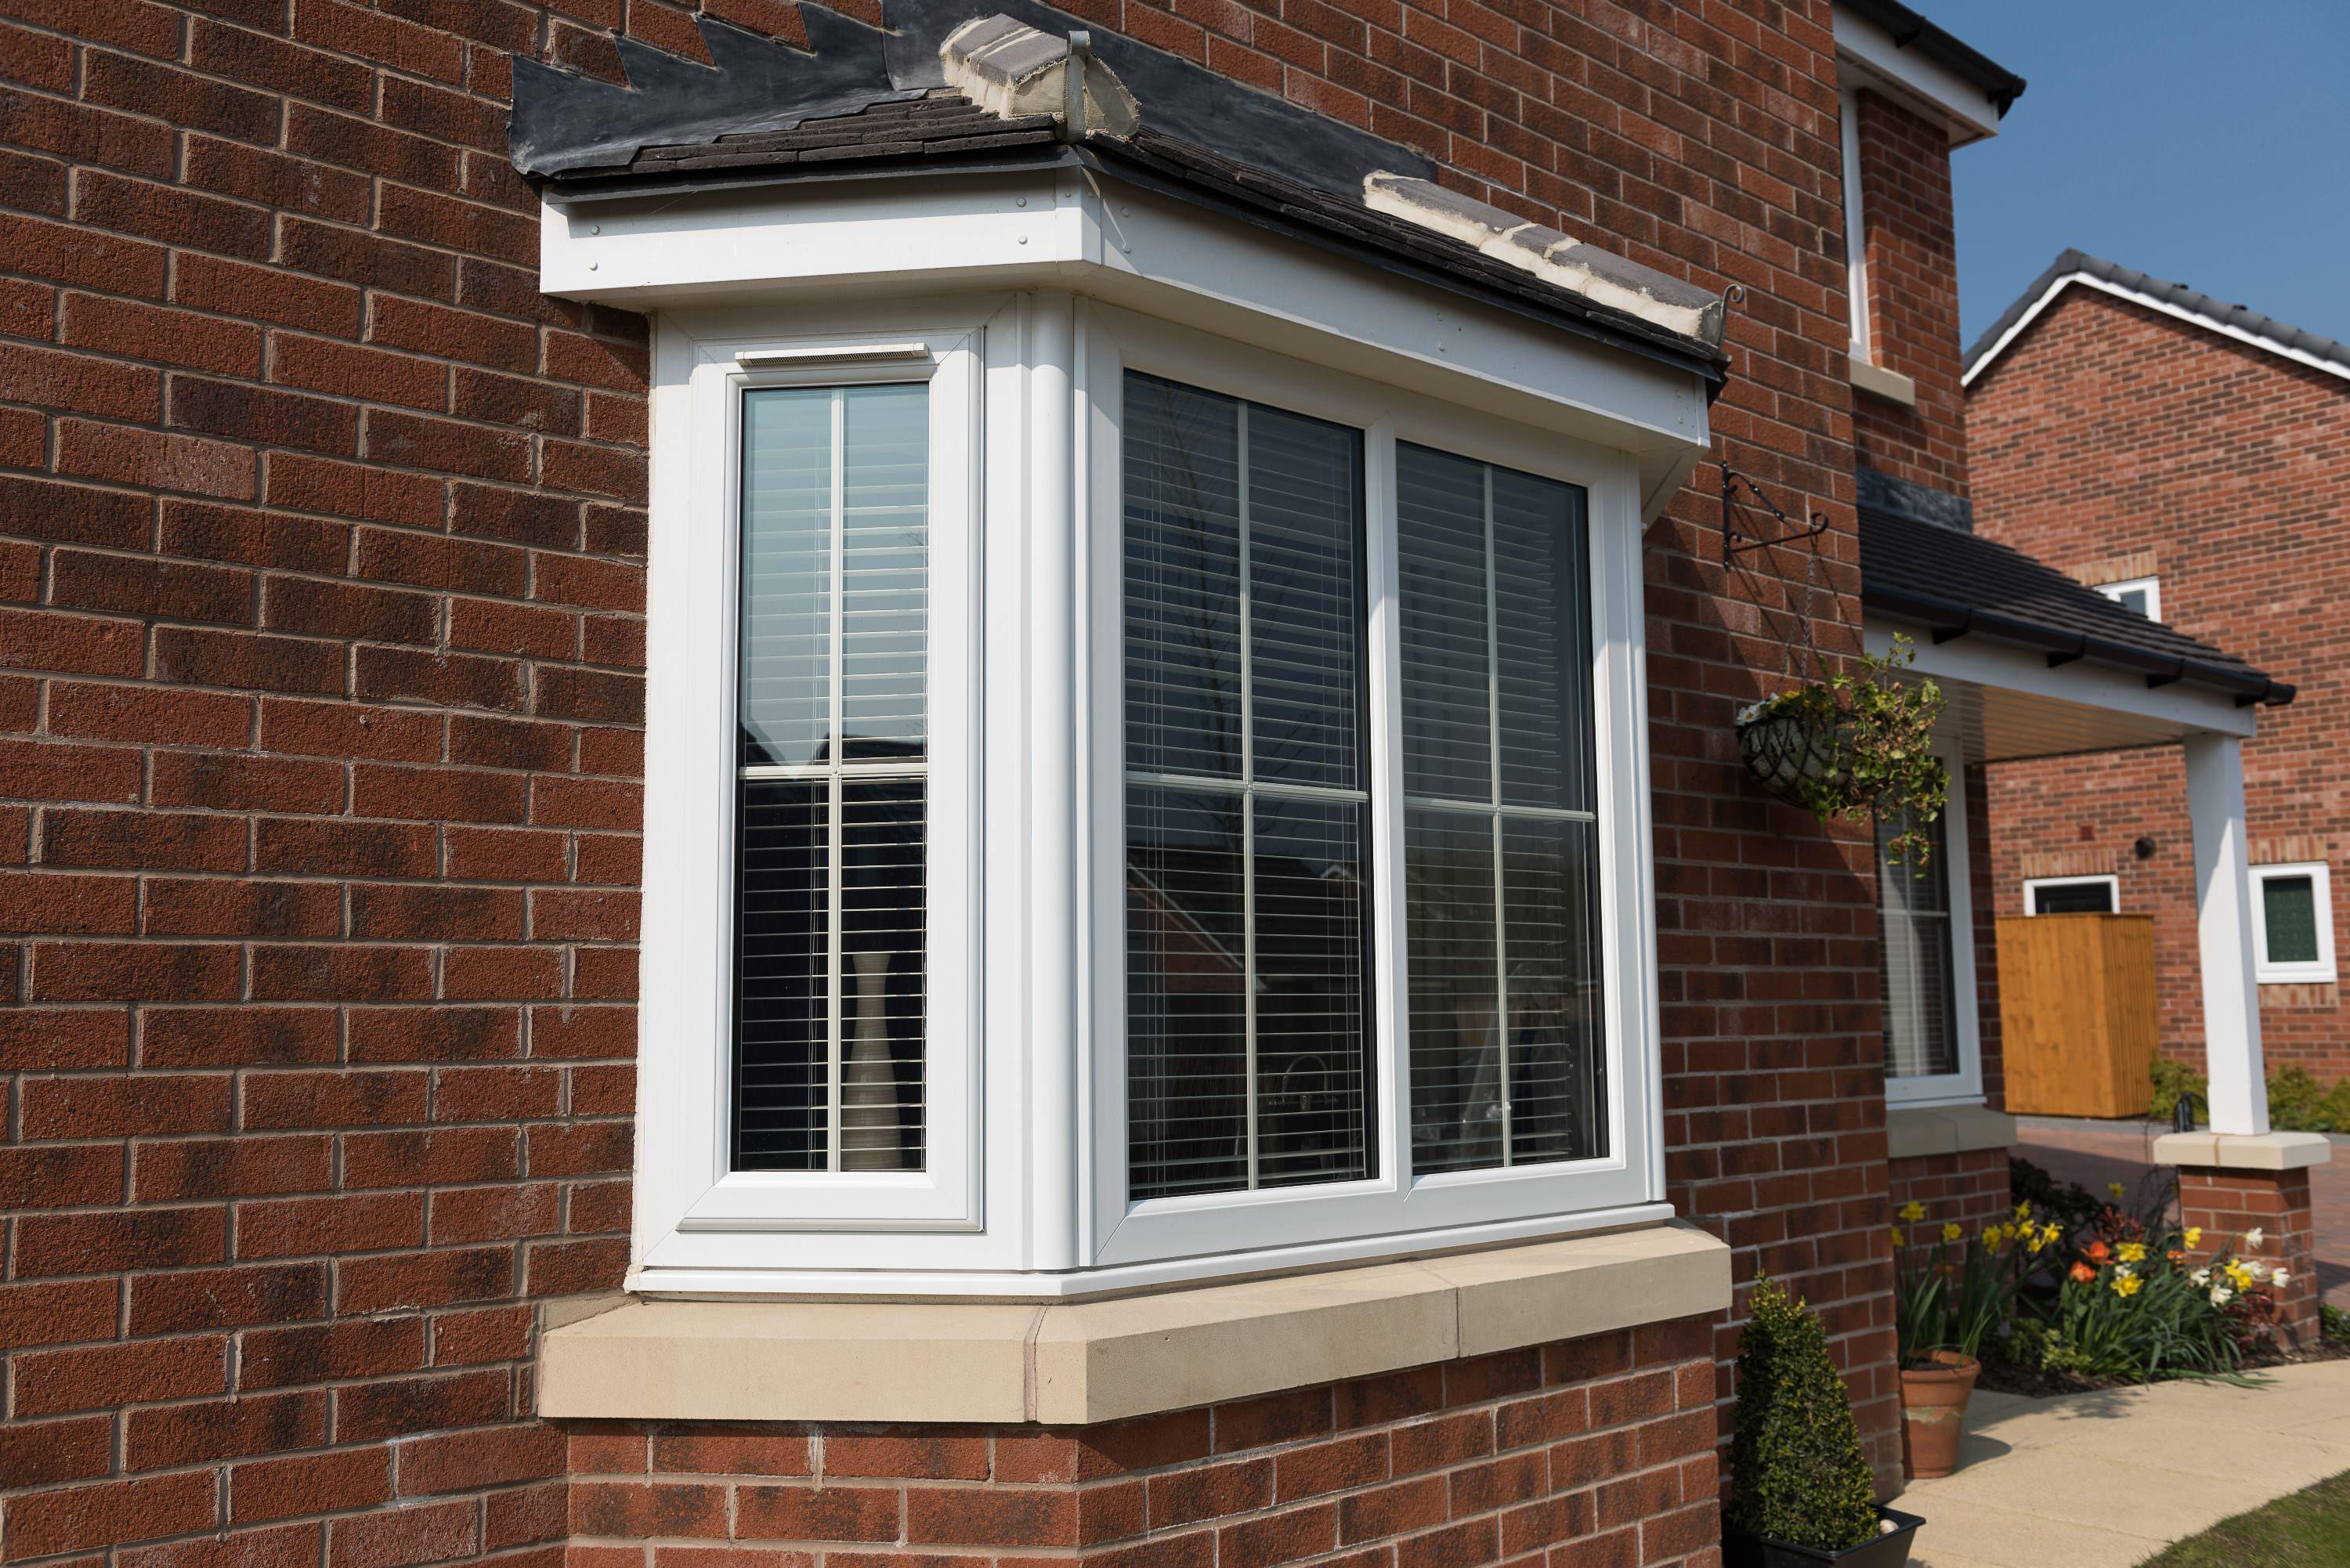 Bay and bow windows require inside and outside measurements for proper double glazing sizes